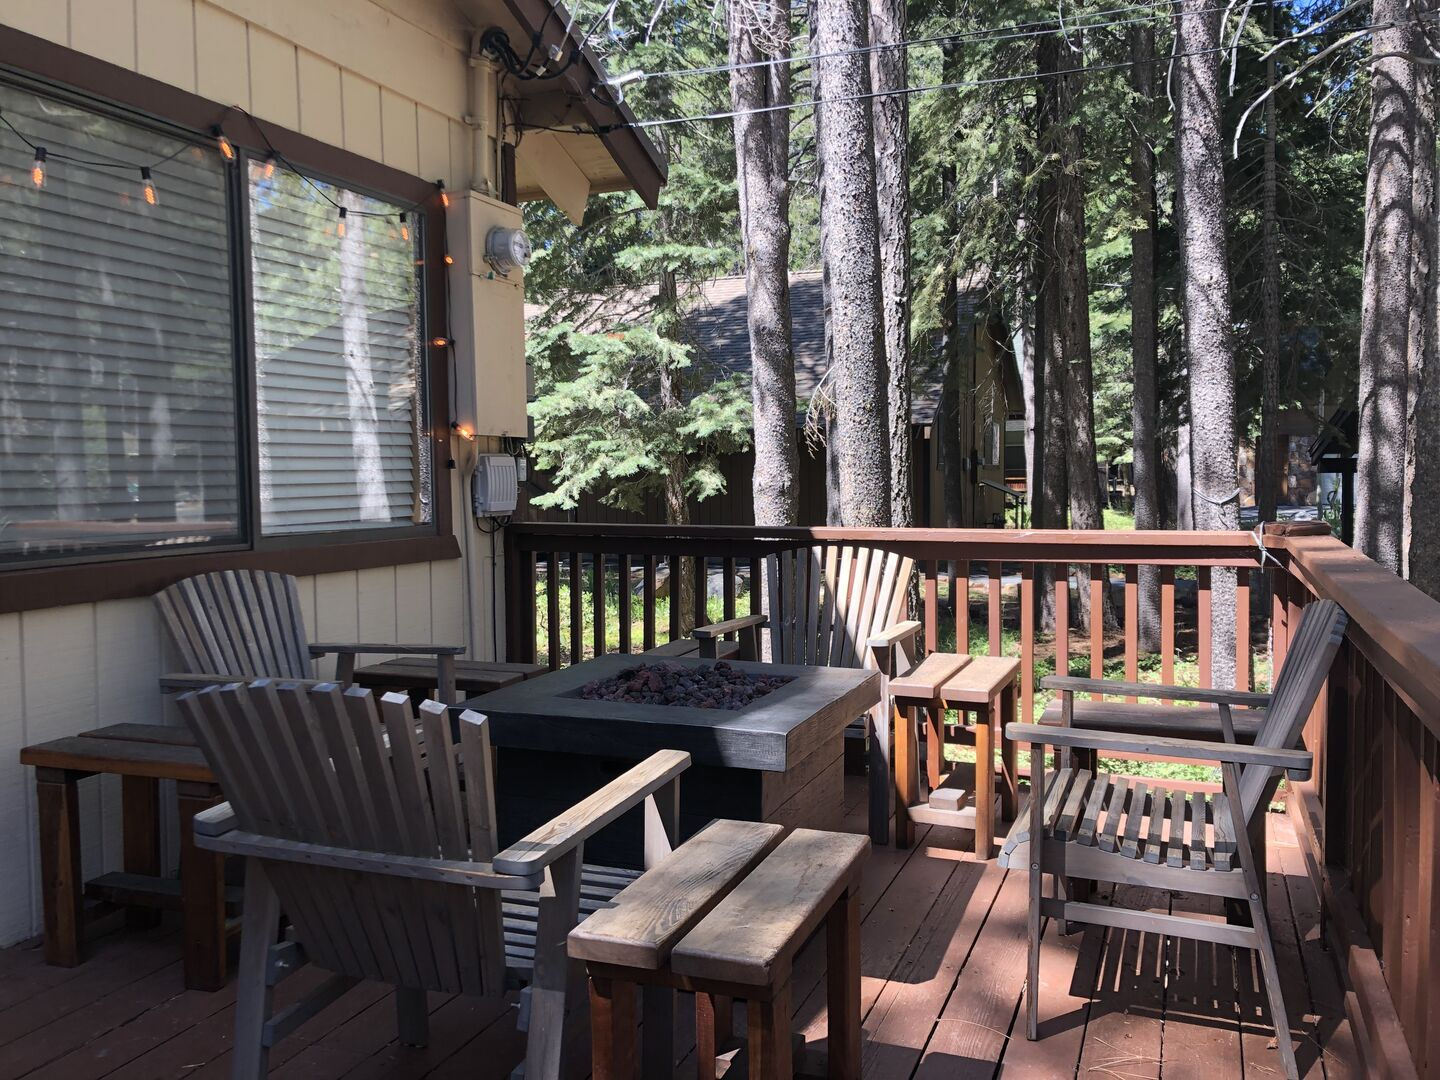 Outdoor Fire Pit and Wooden Chairs on the Deck